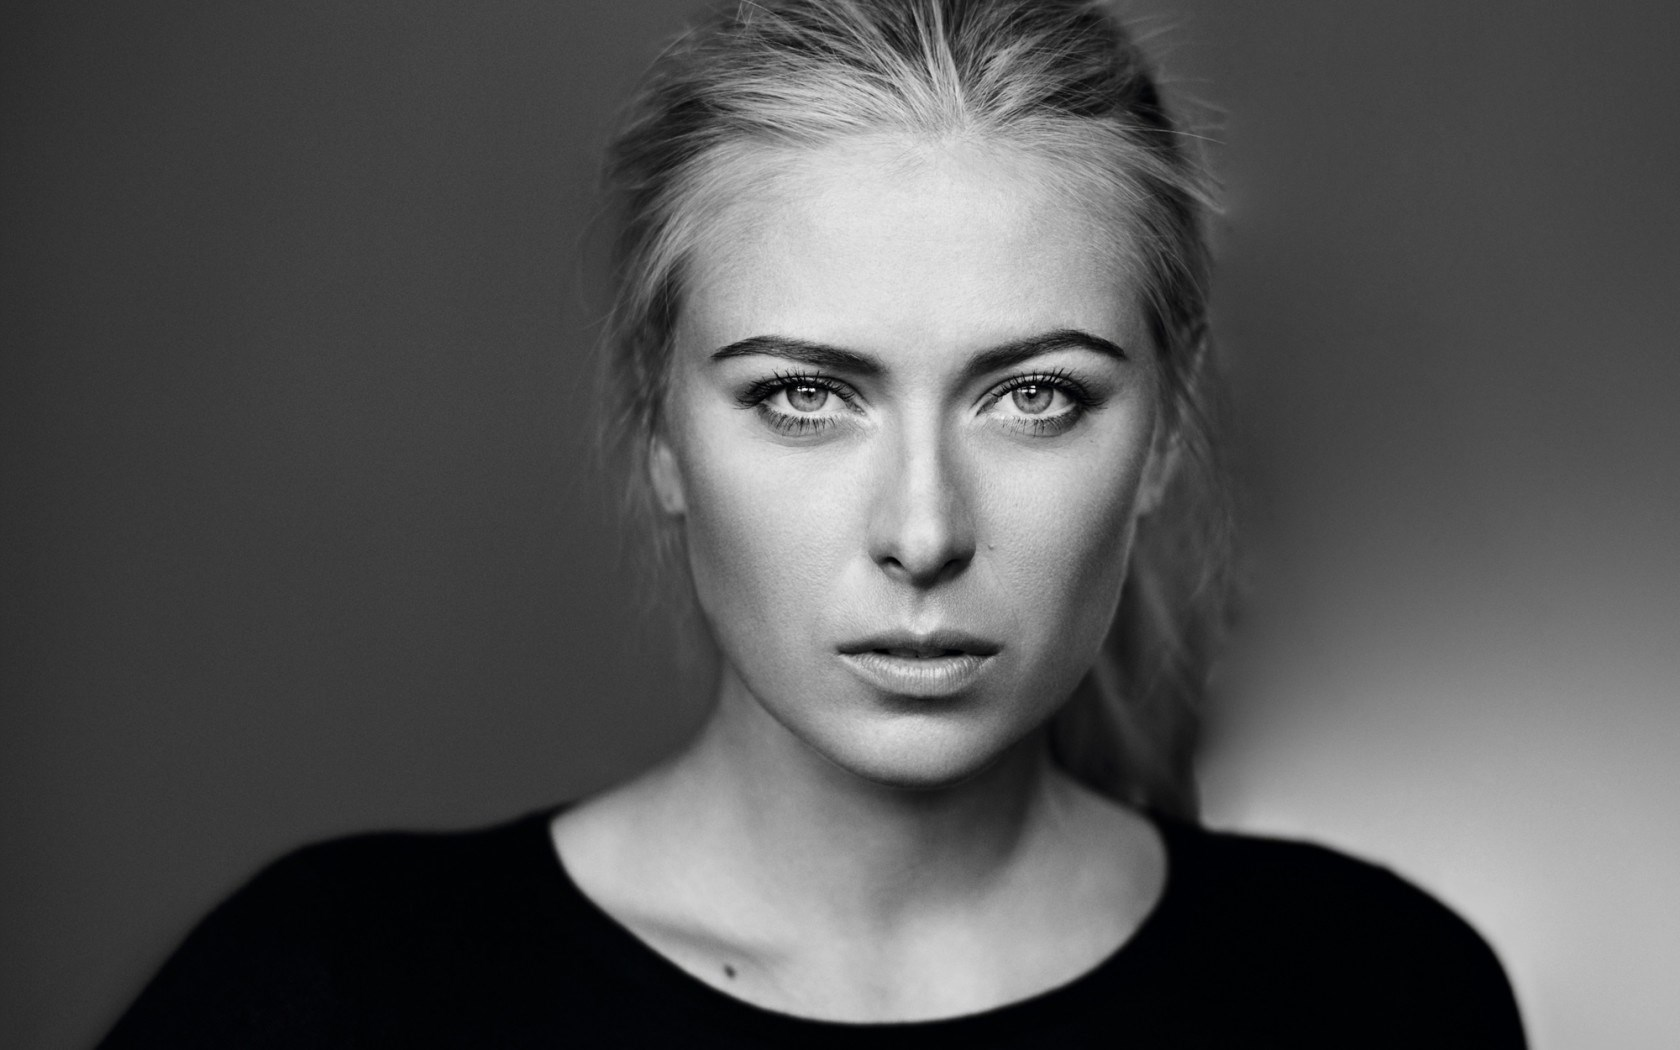 Maria Sharapova Tennis Player Portrait